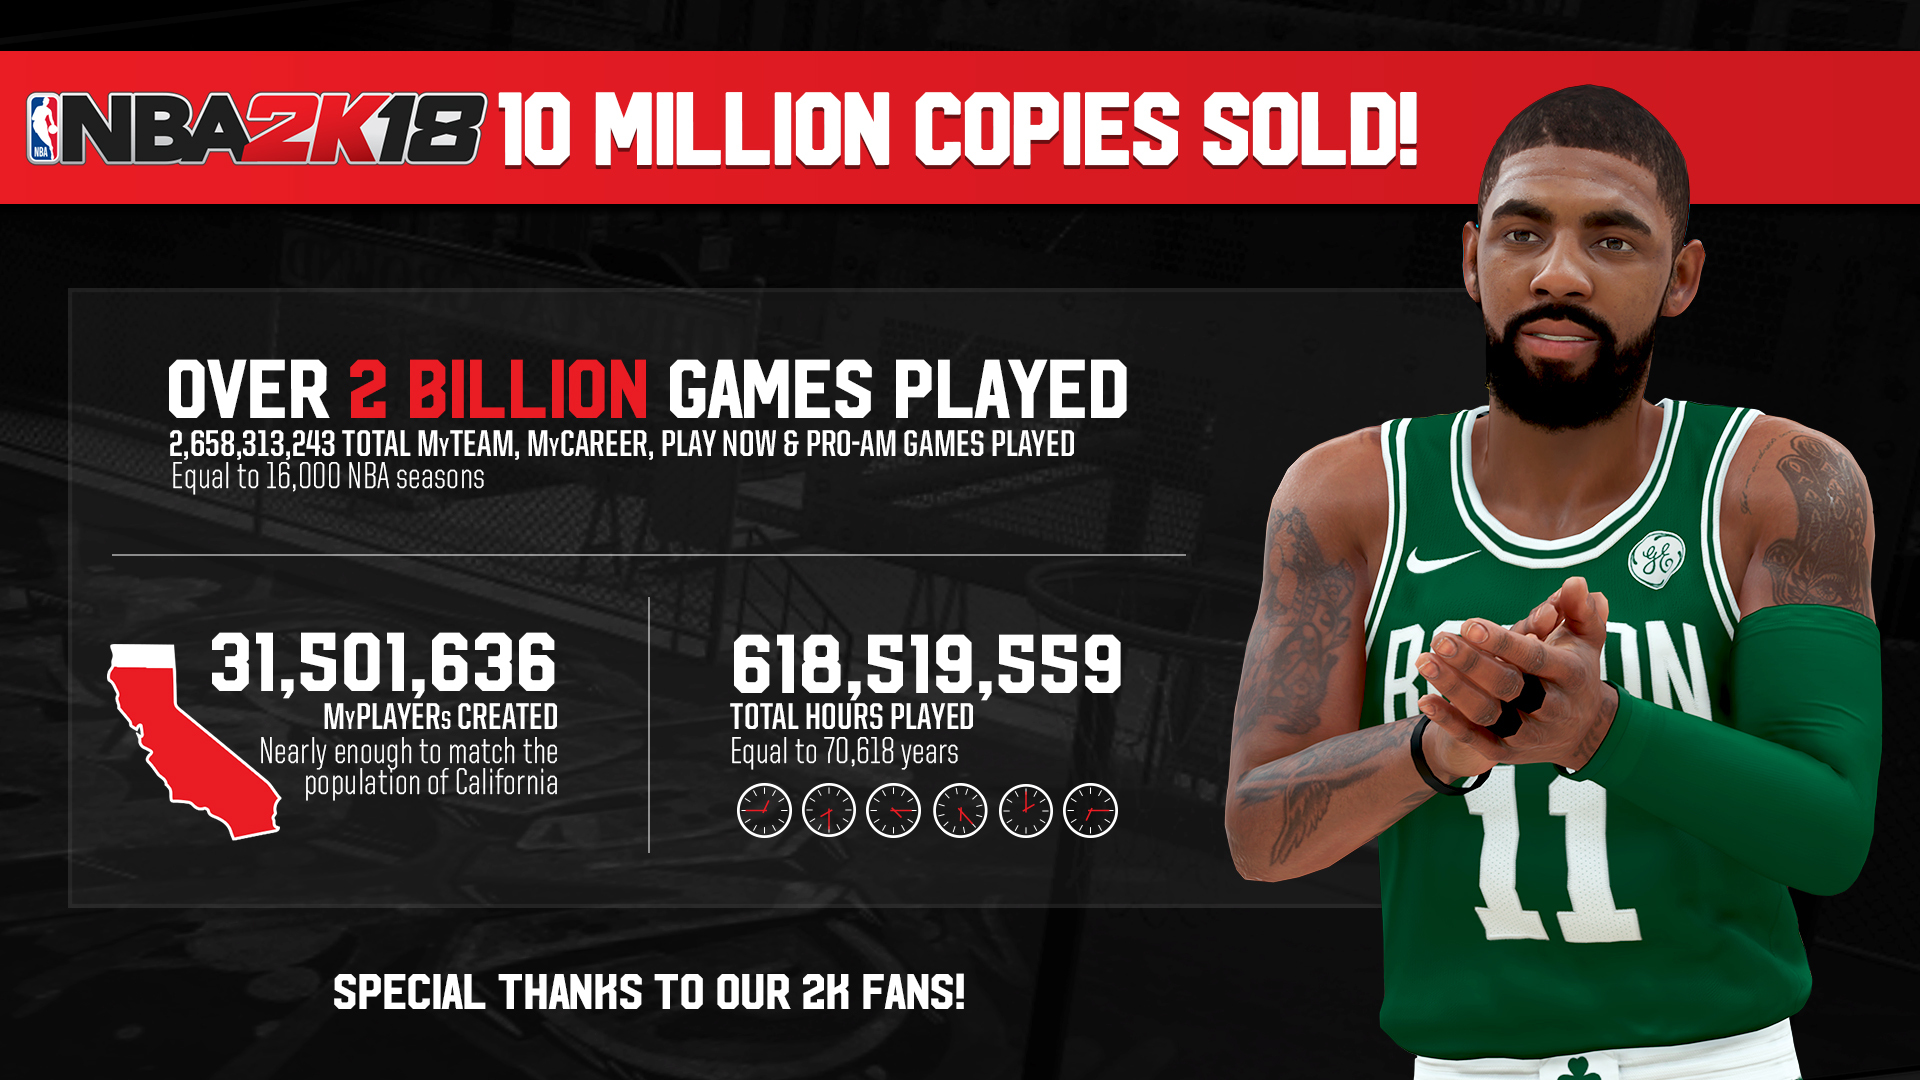 NBA 2K18 Hits Franchise Sales Record | Business Wire